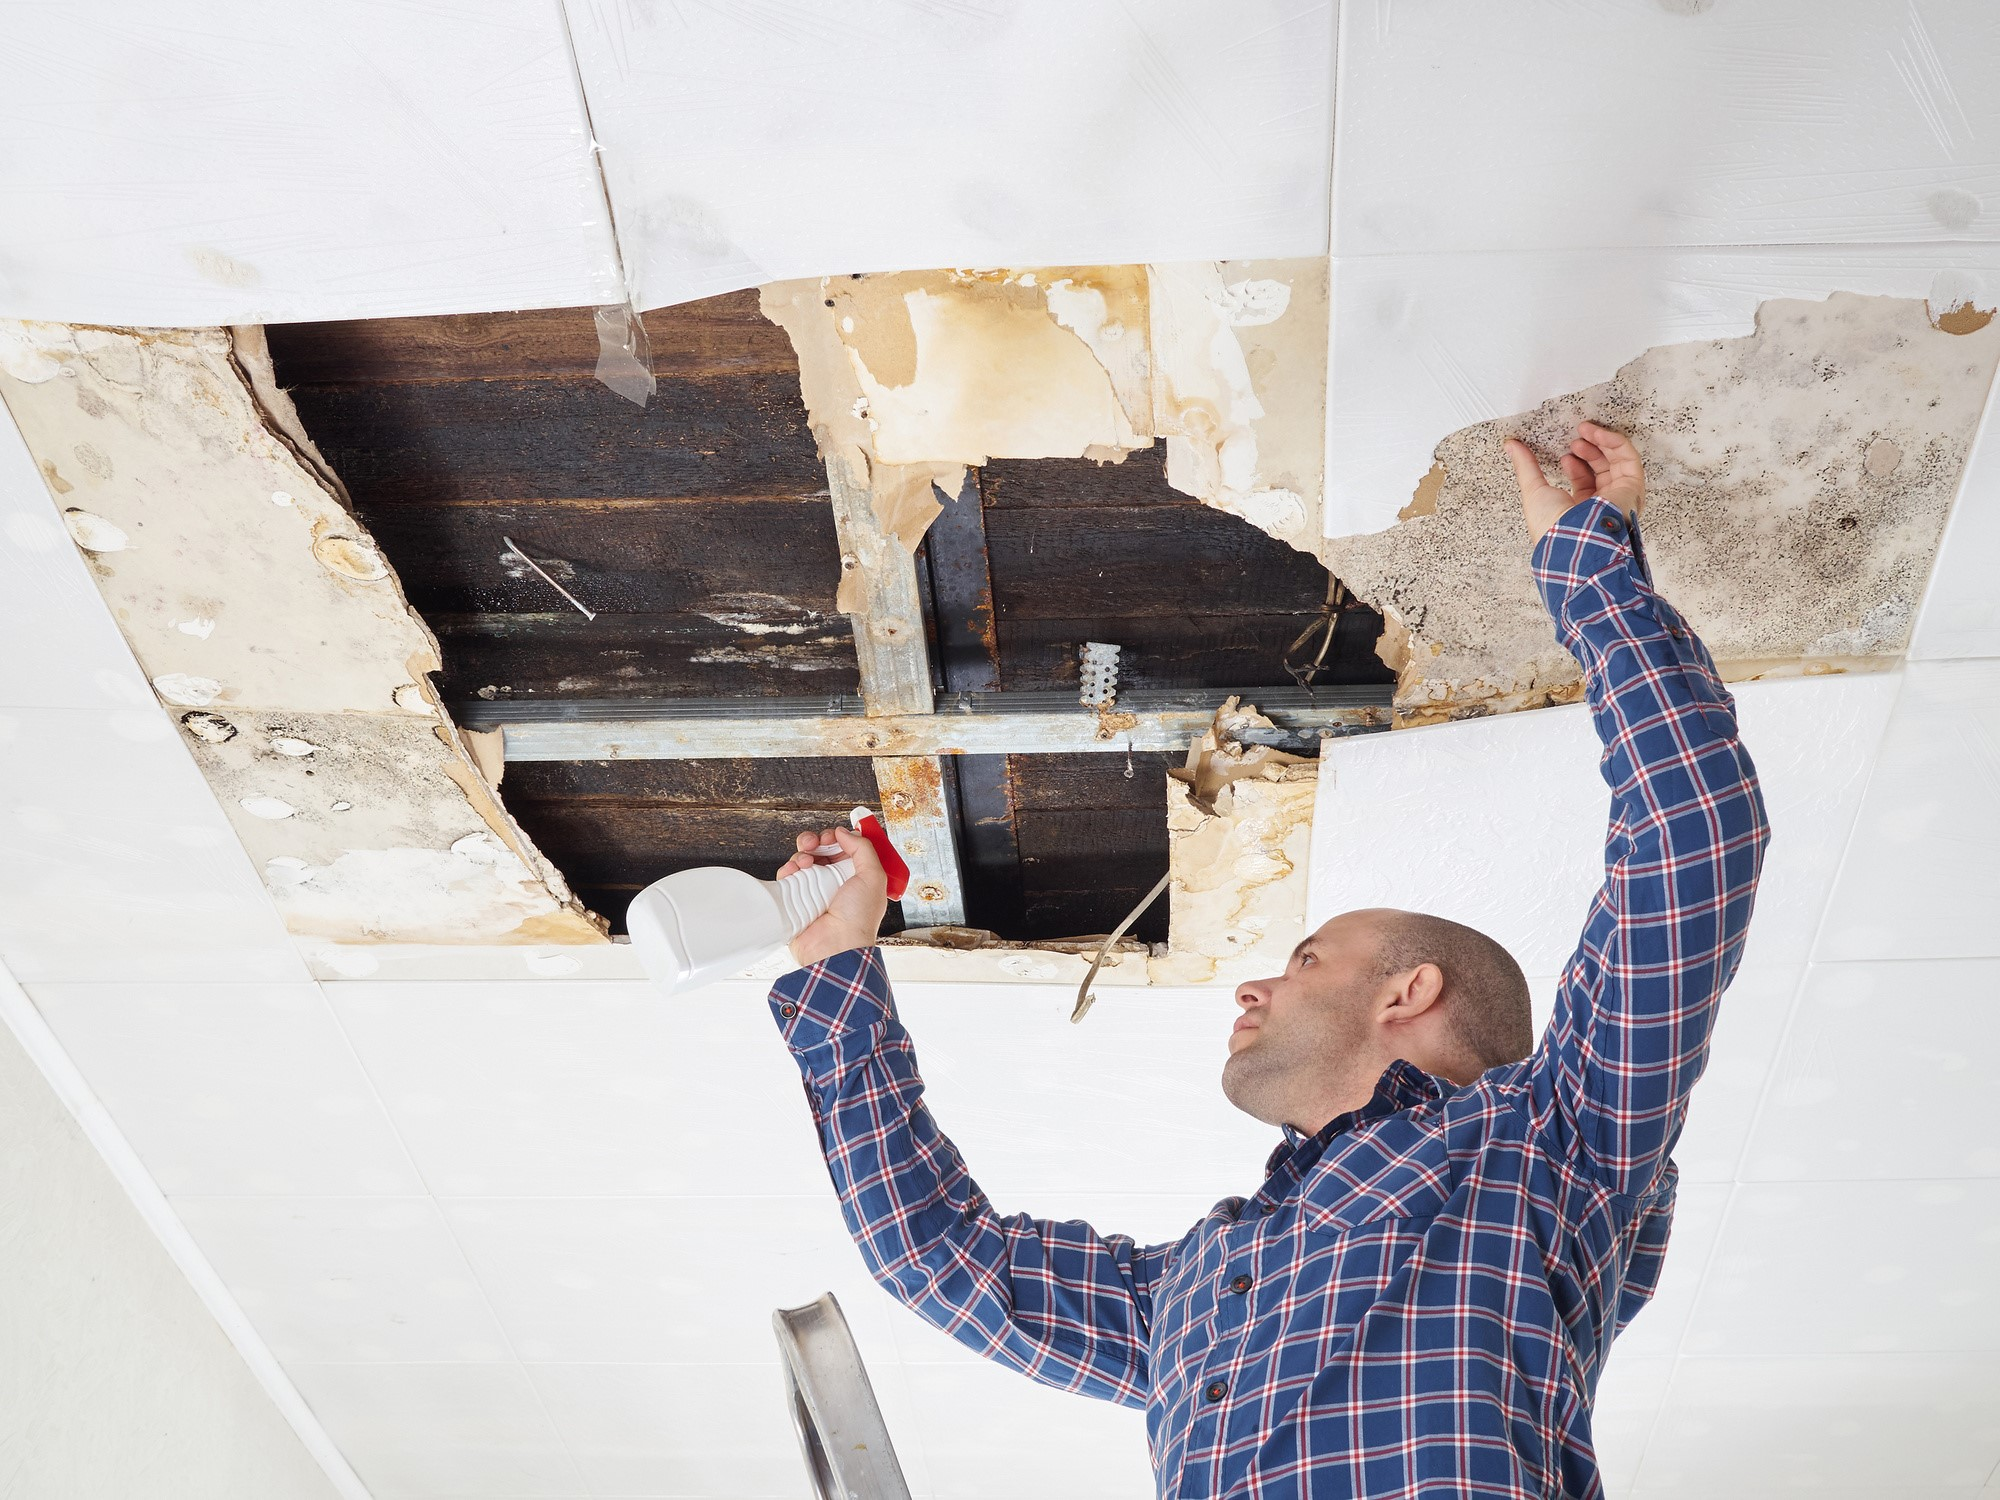 image - 5 Questions to Ask Before Choosing a Mold Removal Company